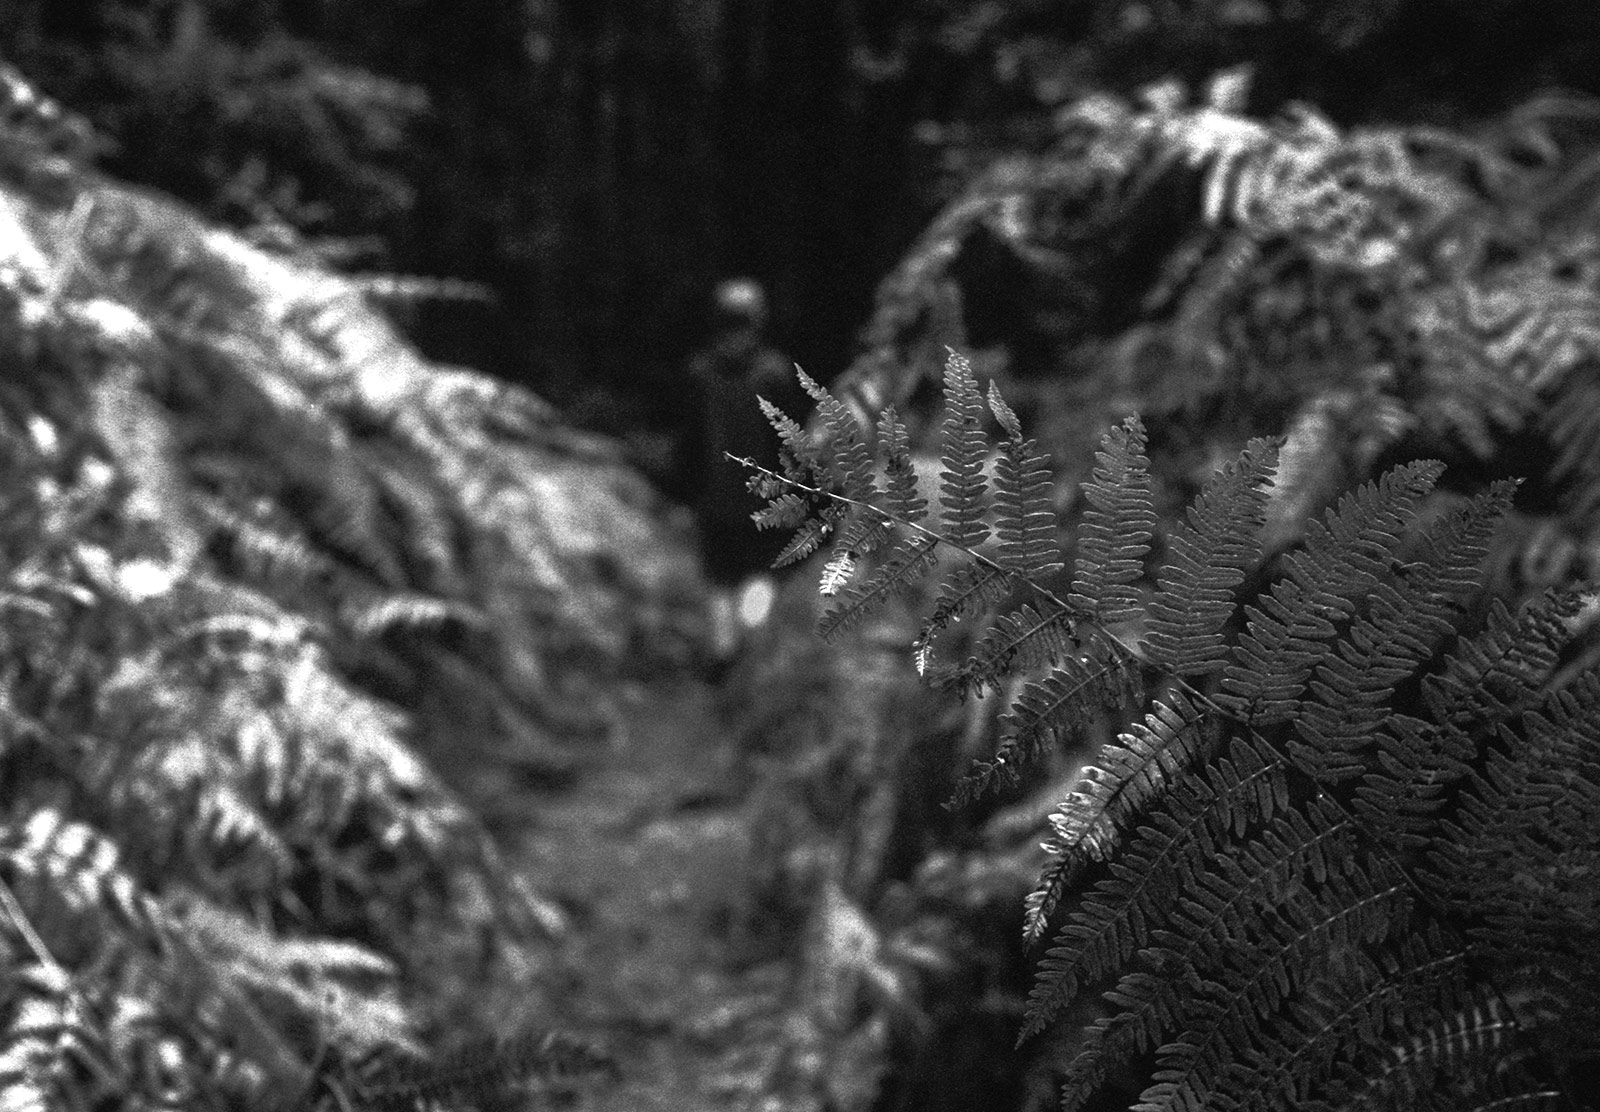 Fern across path